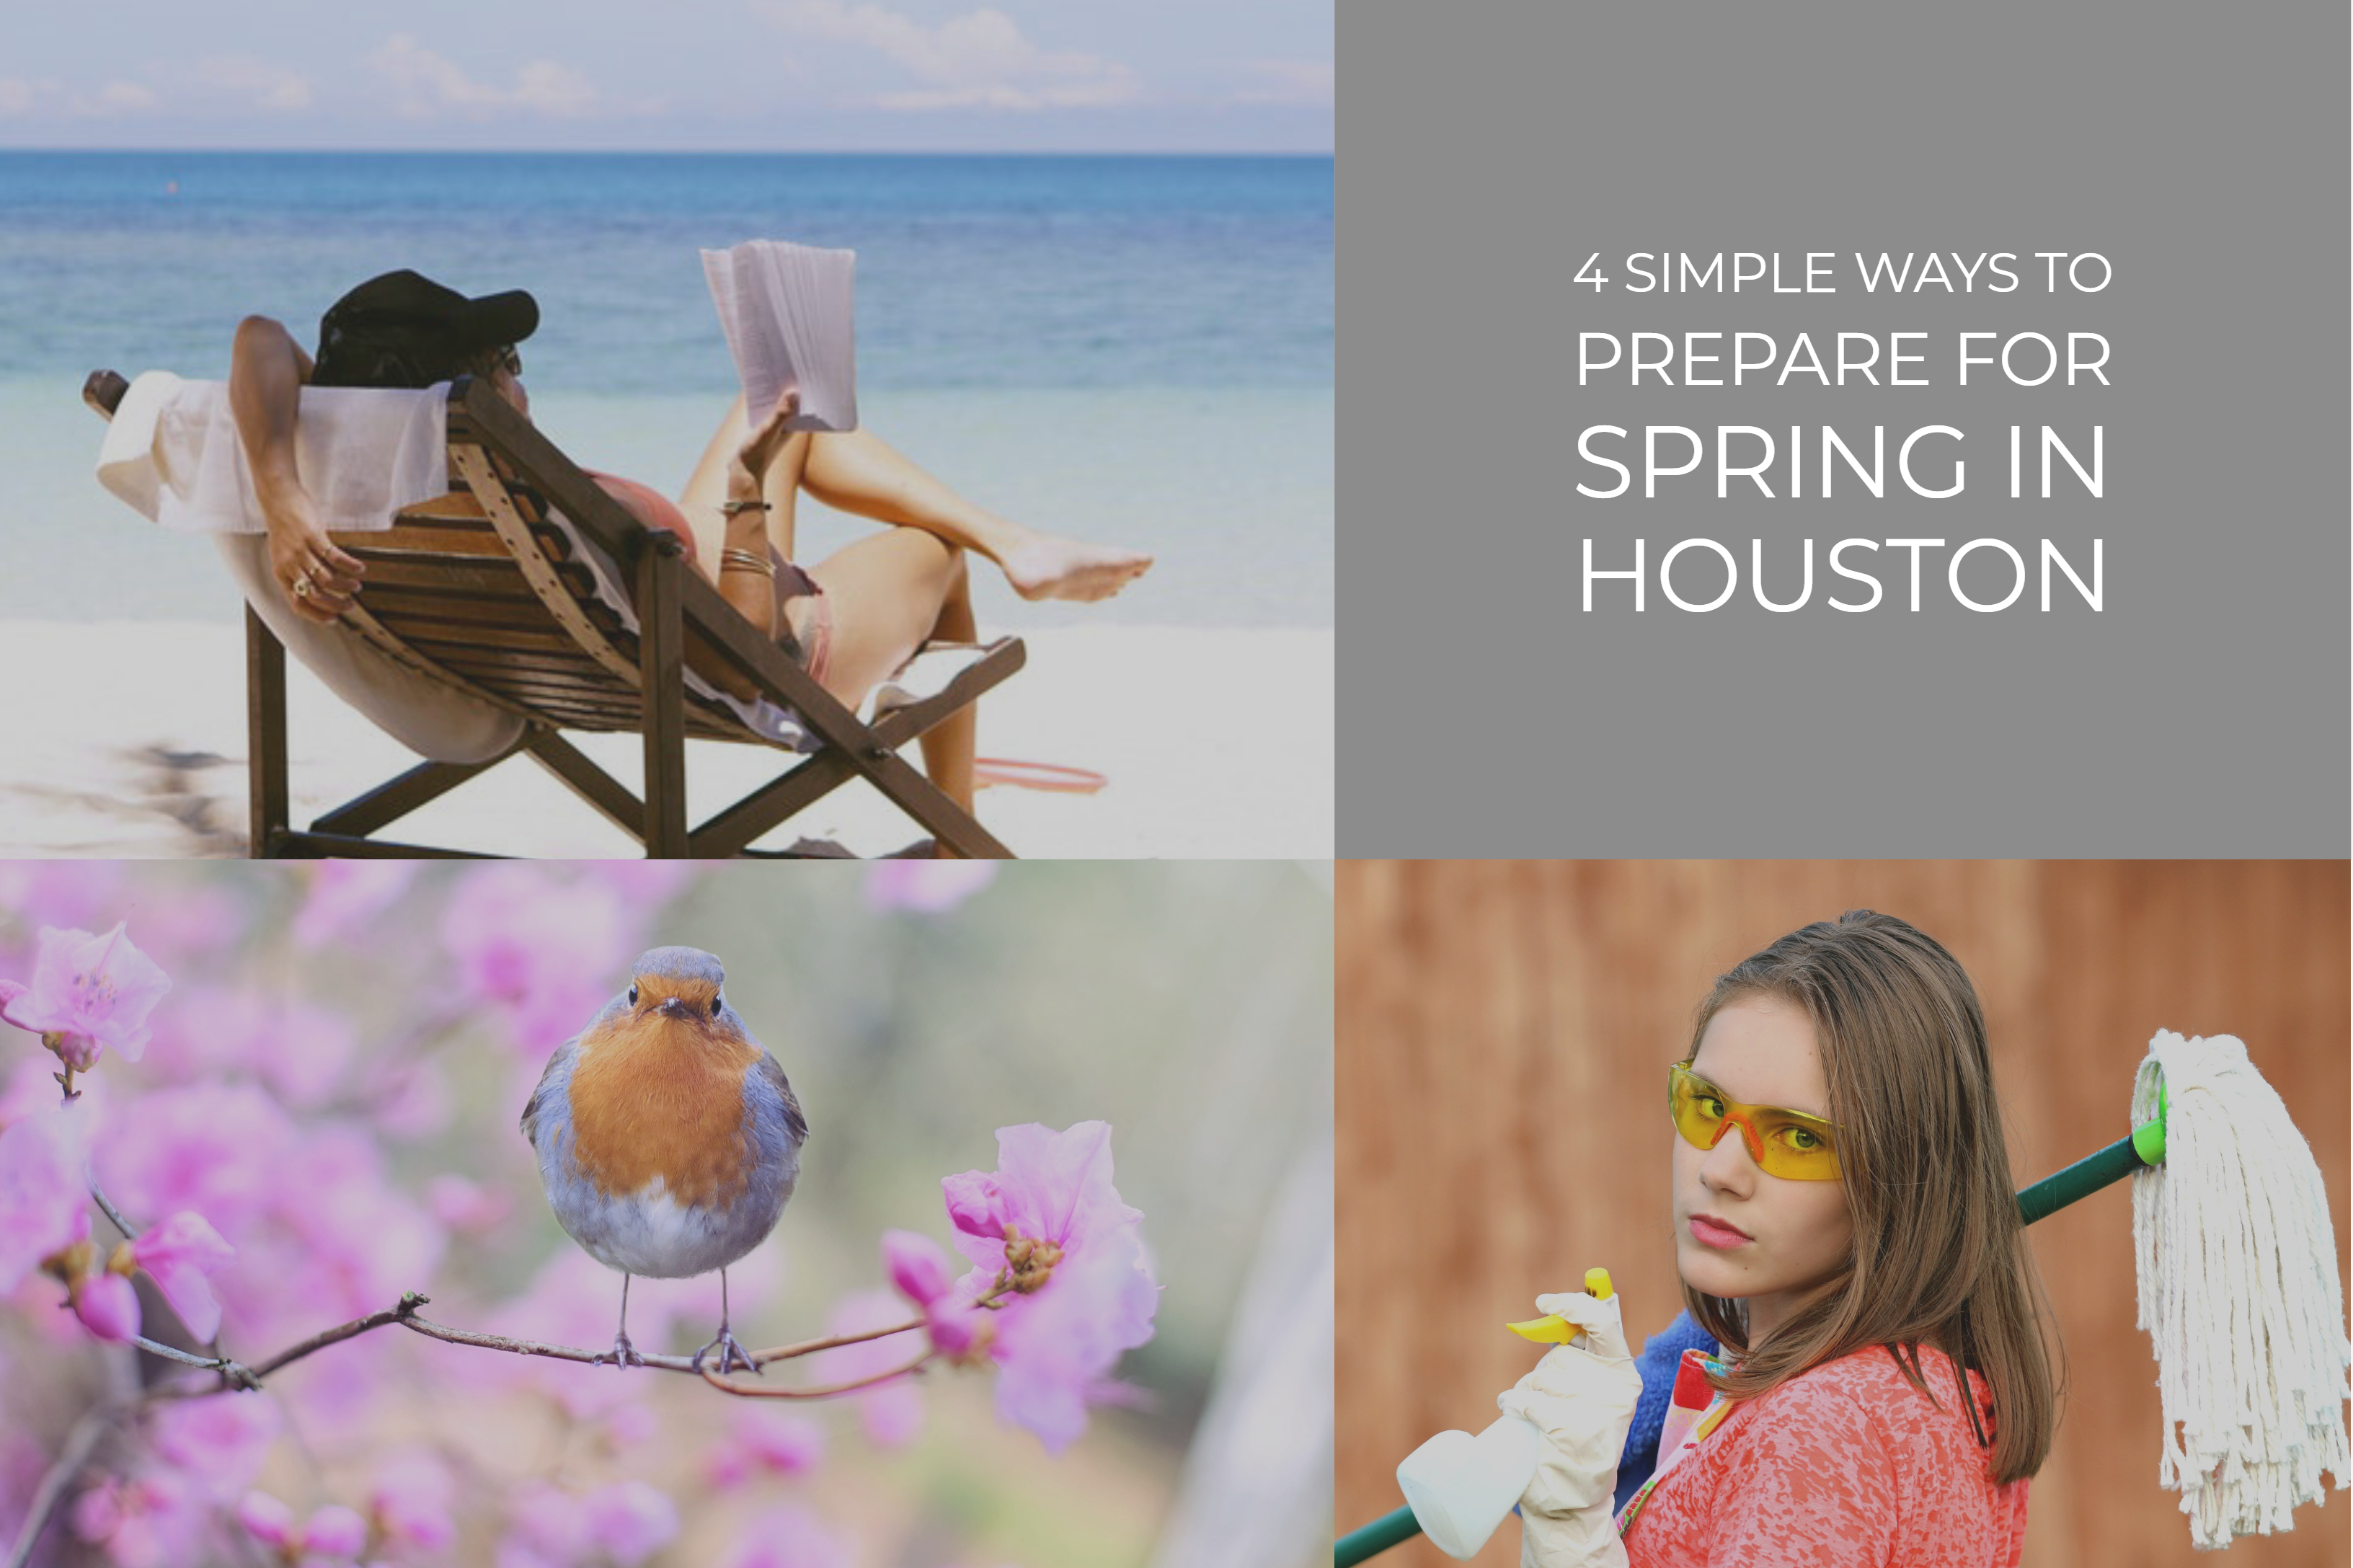 4 Simple Ways To Prepare For Spring In Houston